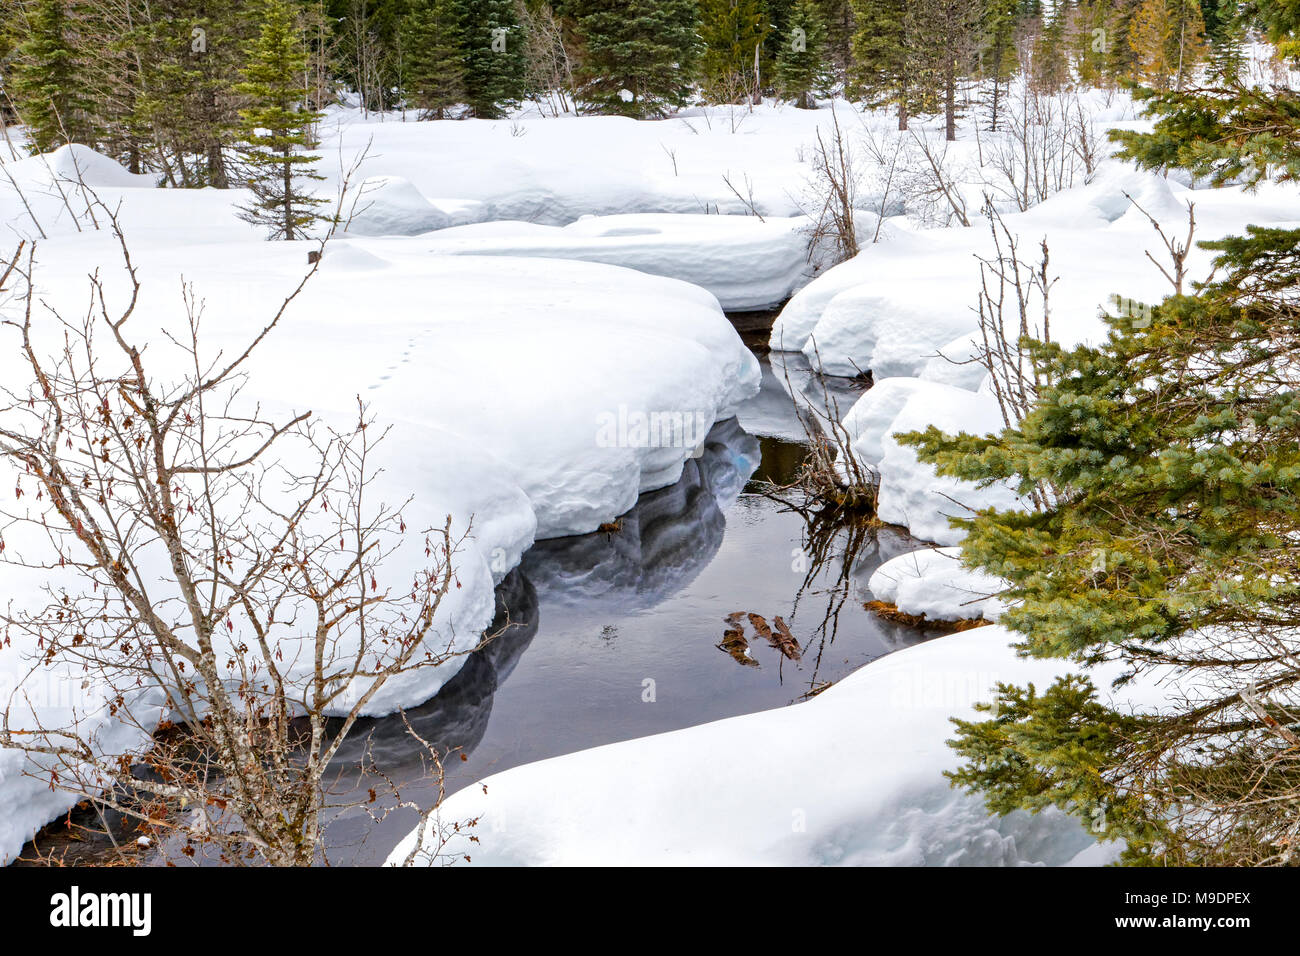 42,780.01165 flowing creek in cold winter running through a deep blanket of soft white forest snow - Stock Image